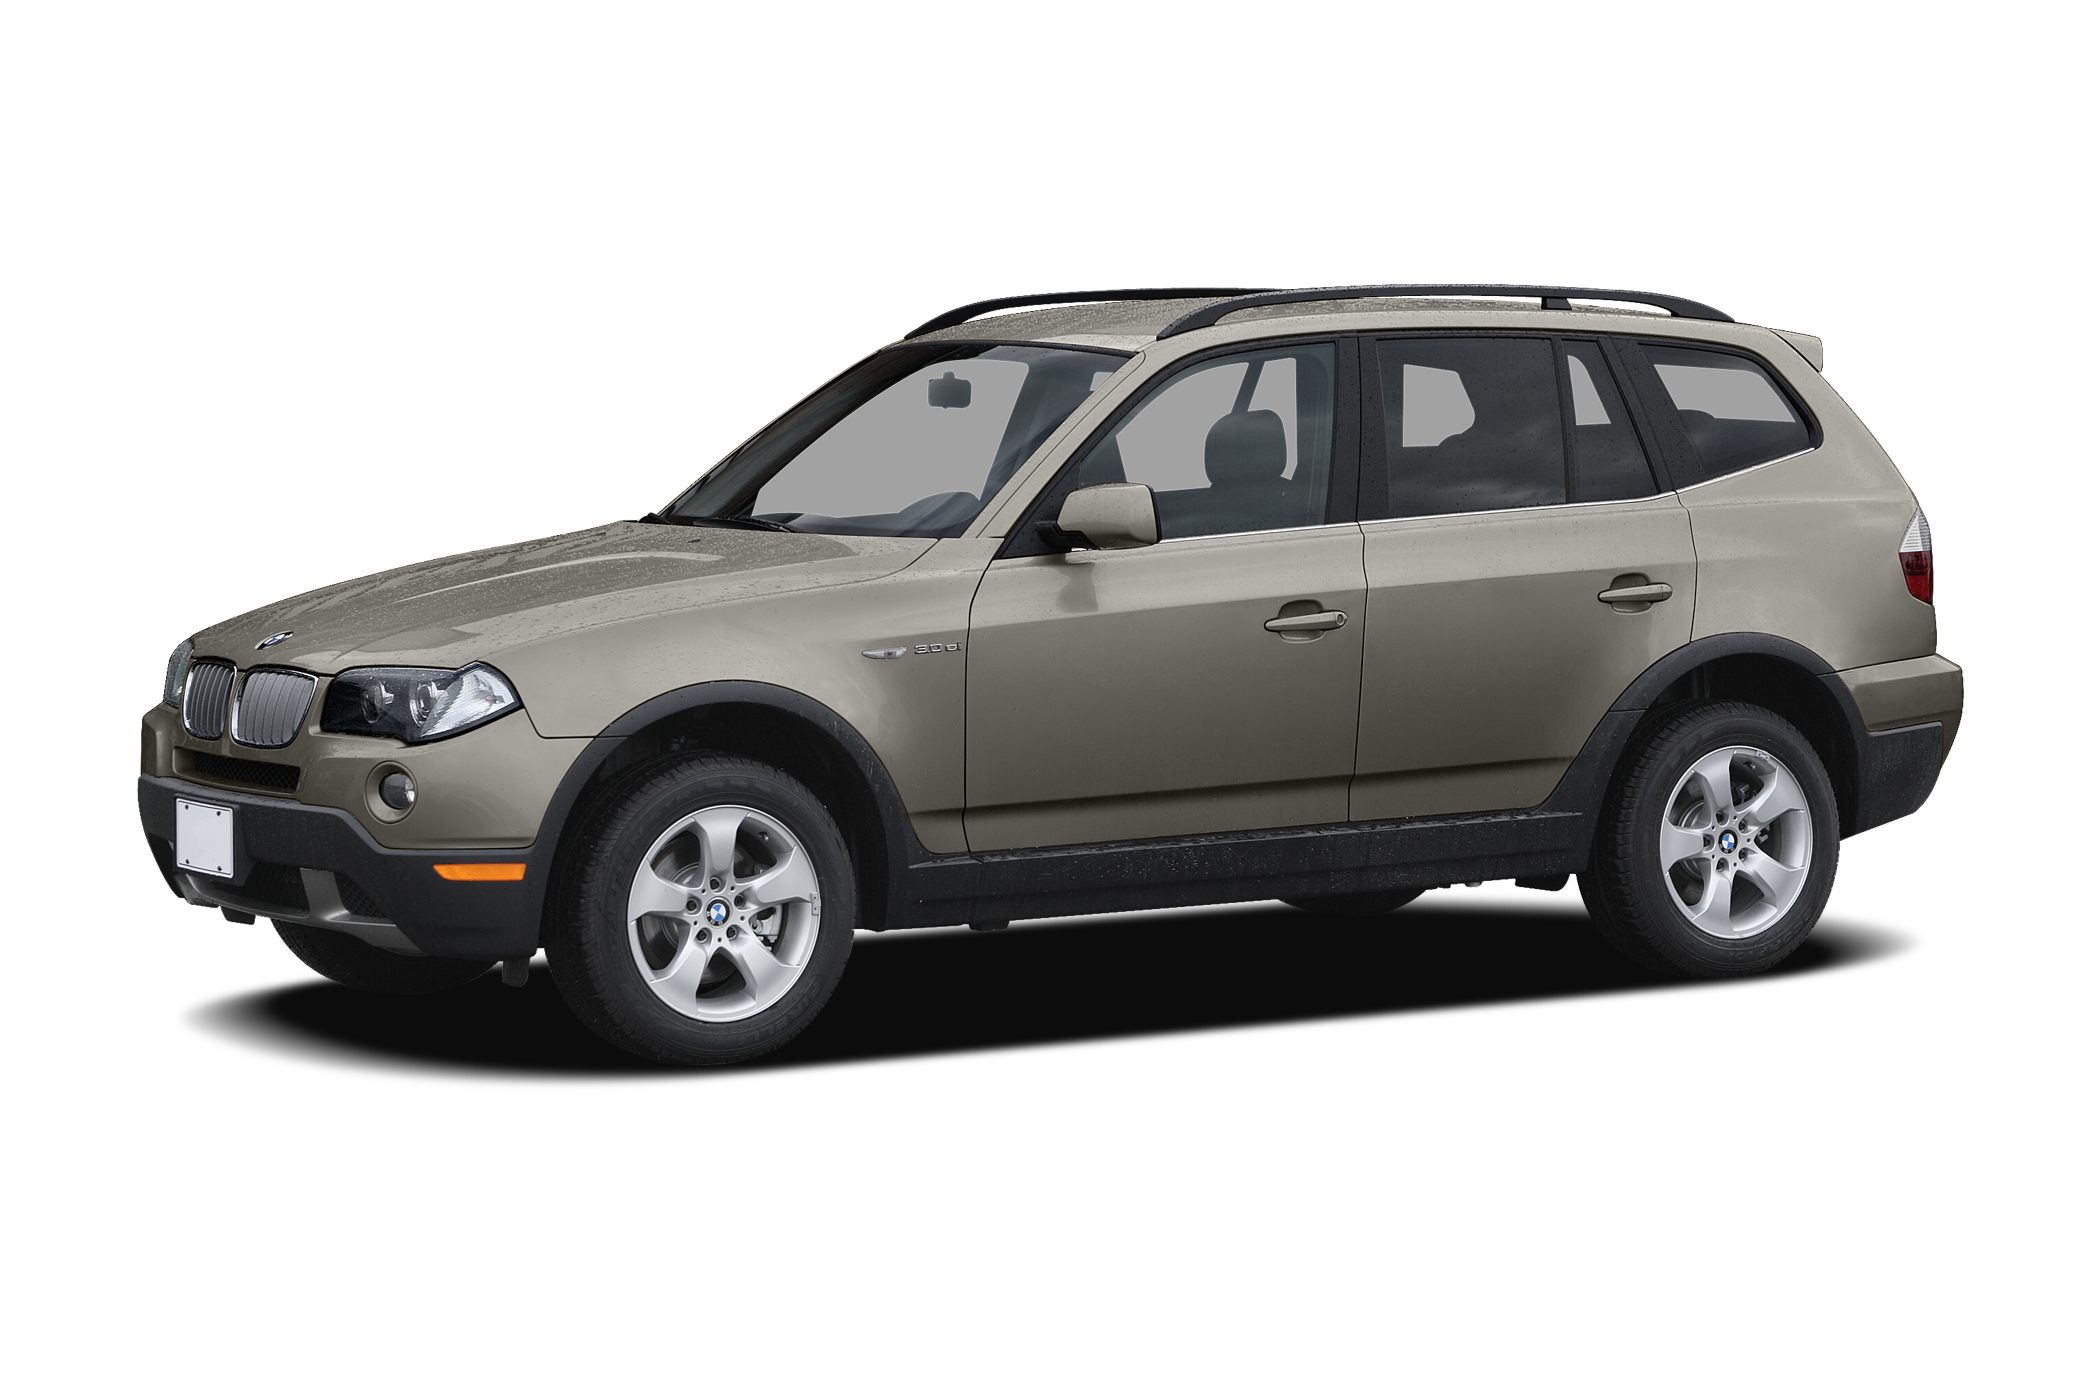 2007 BMW X3 3.0si SUV for sale in Memphis for $14,975 with 77,441 miles.